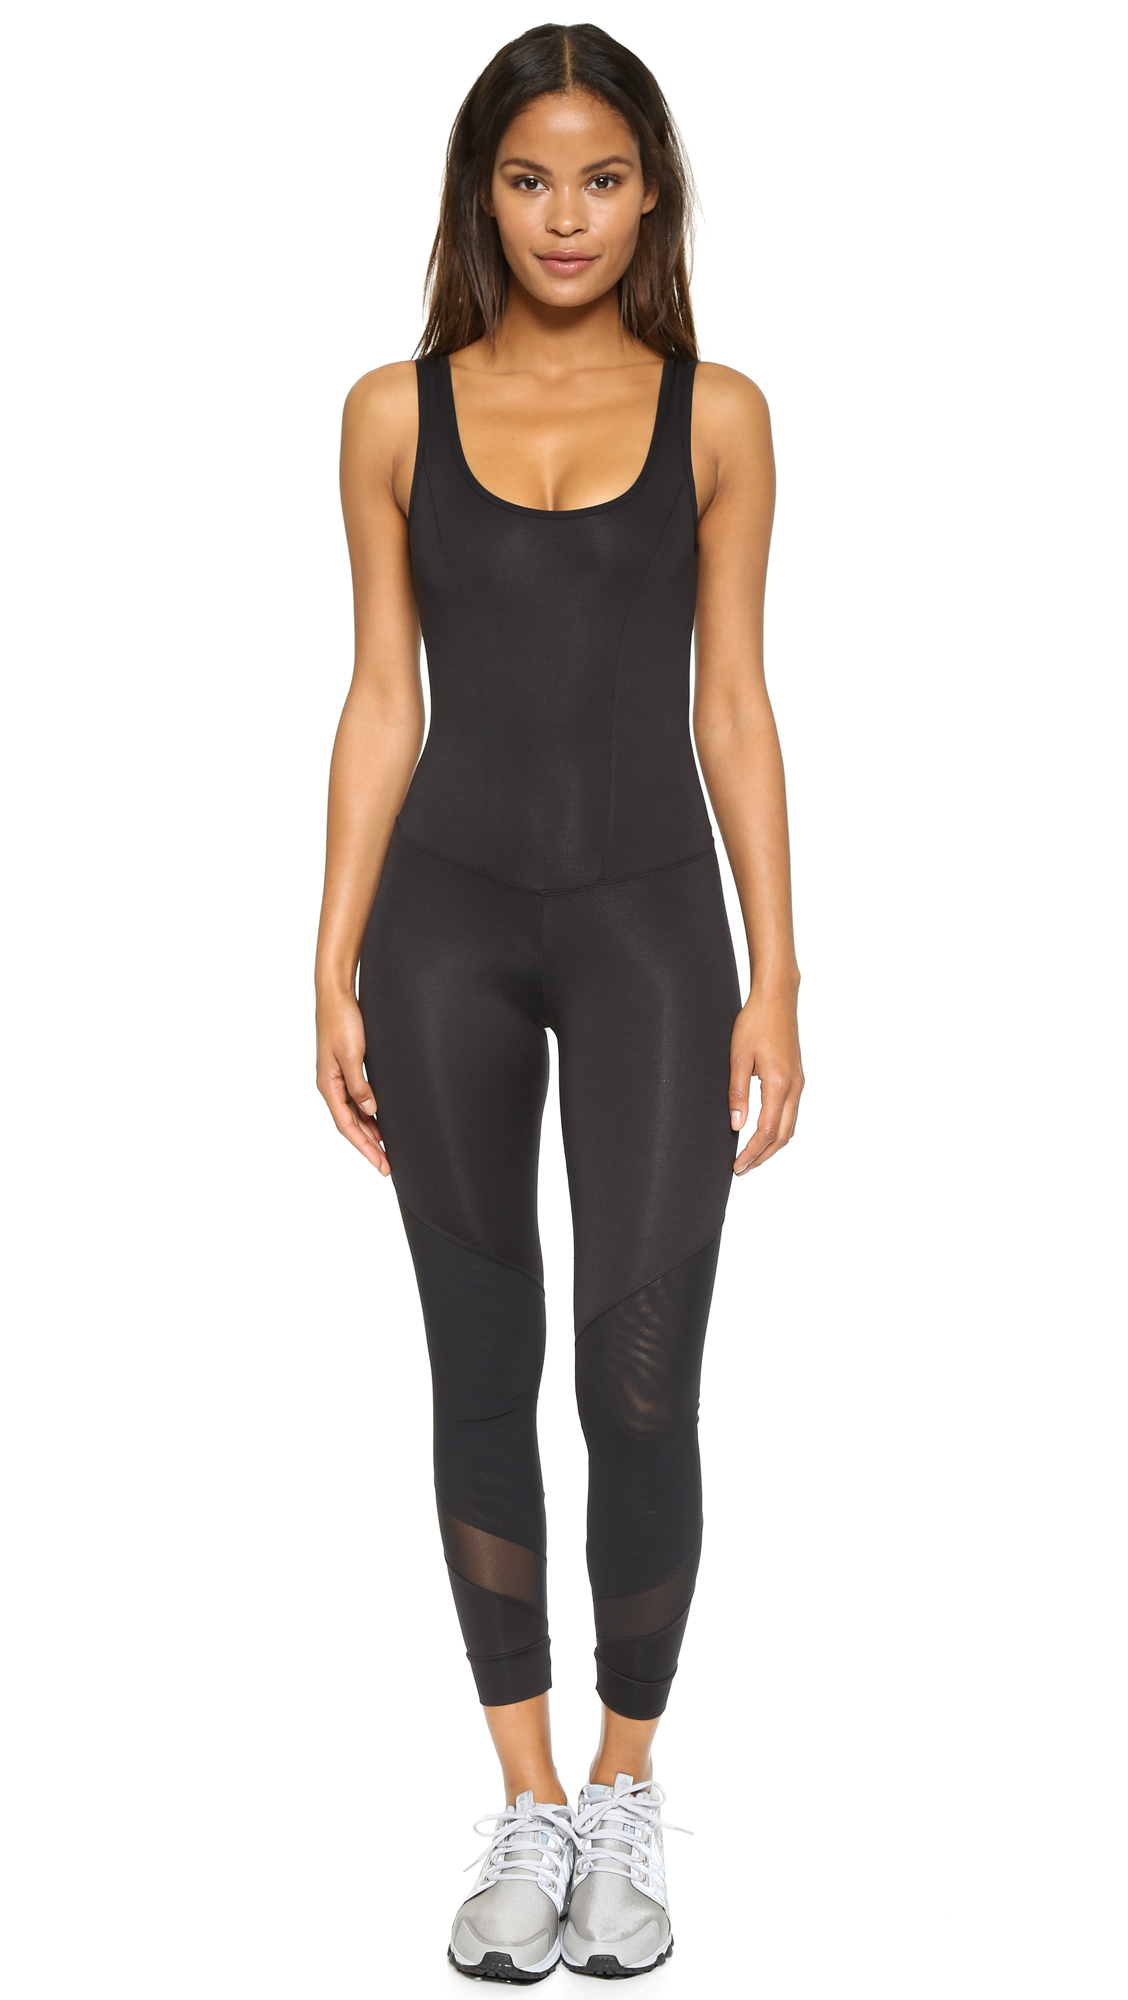 Shop for Women's Yoga activewear at Joe Fresh. Stylish and affordable Yoga activewear withFREE SHIPPING on orders over $ FREE RETURNS in store.